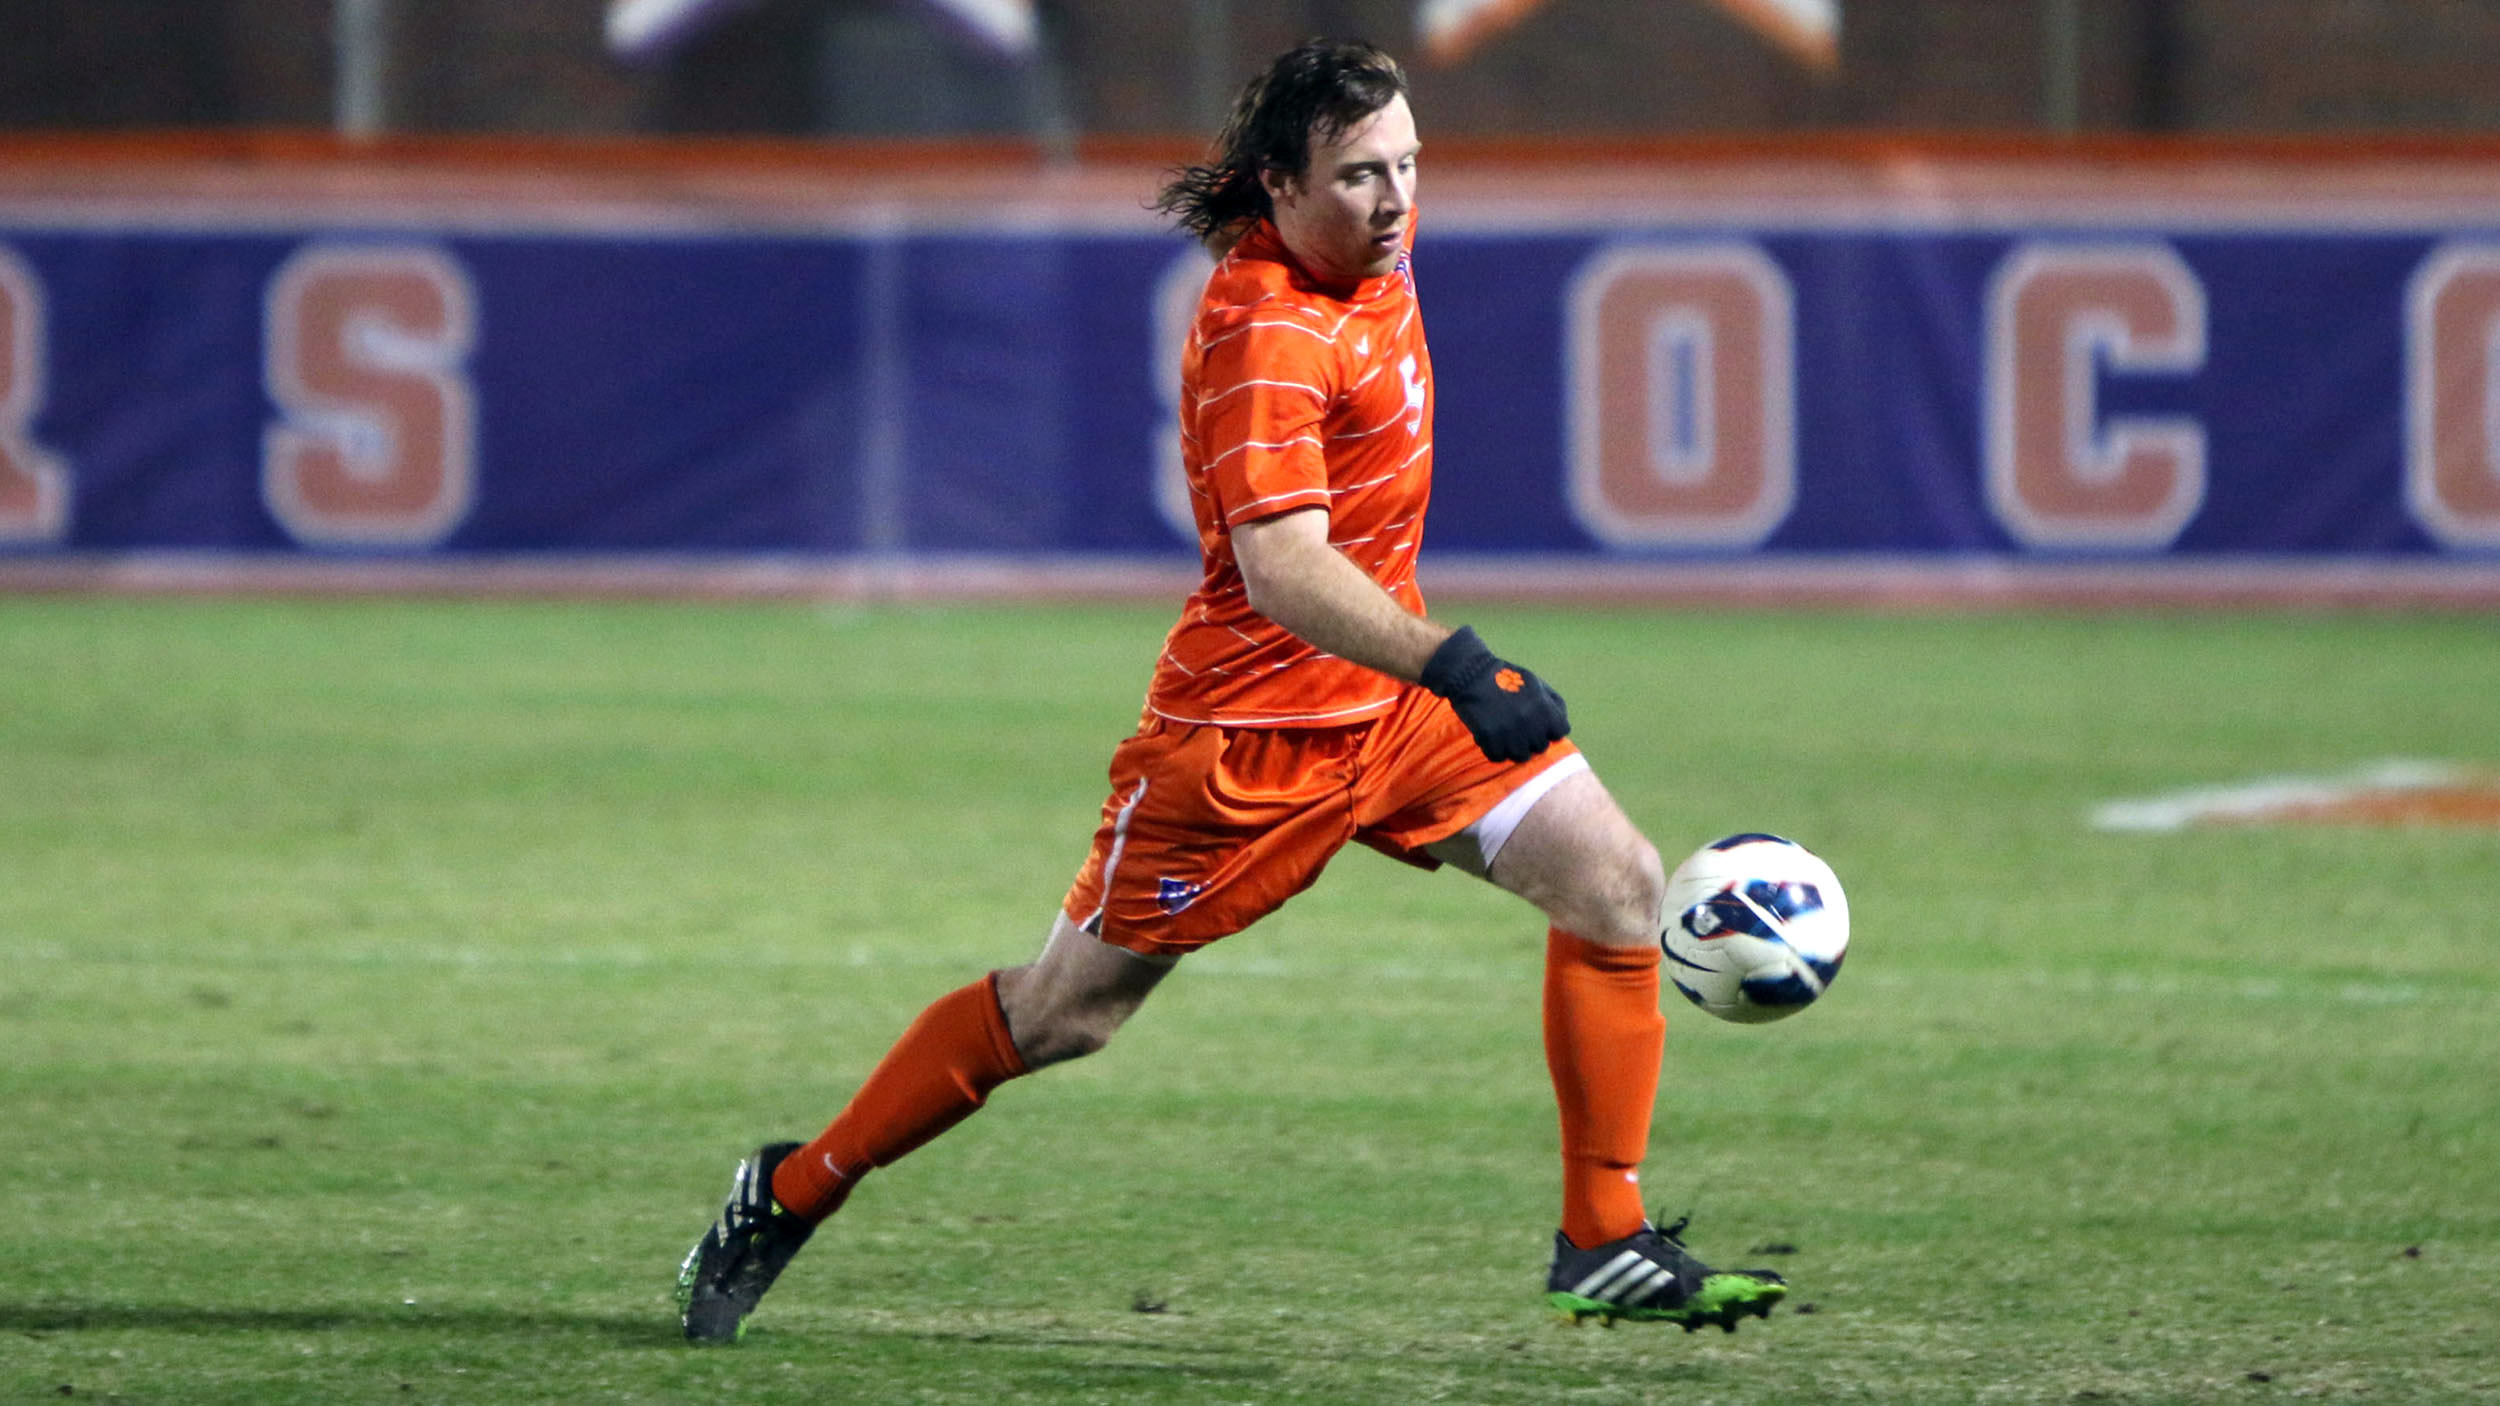 Three Clemson Men?s Soccer Players Named All-ACC